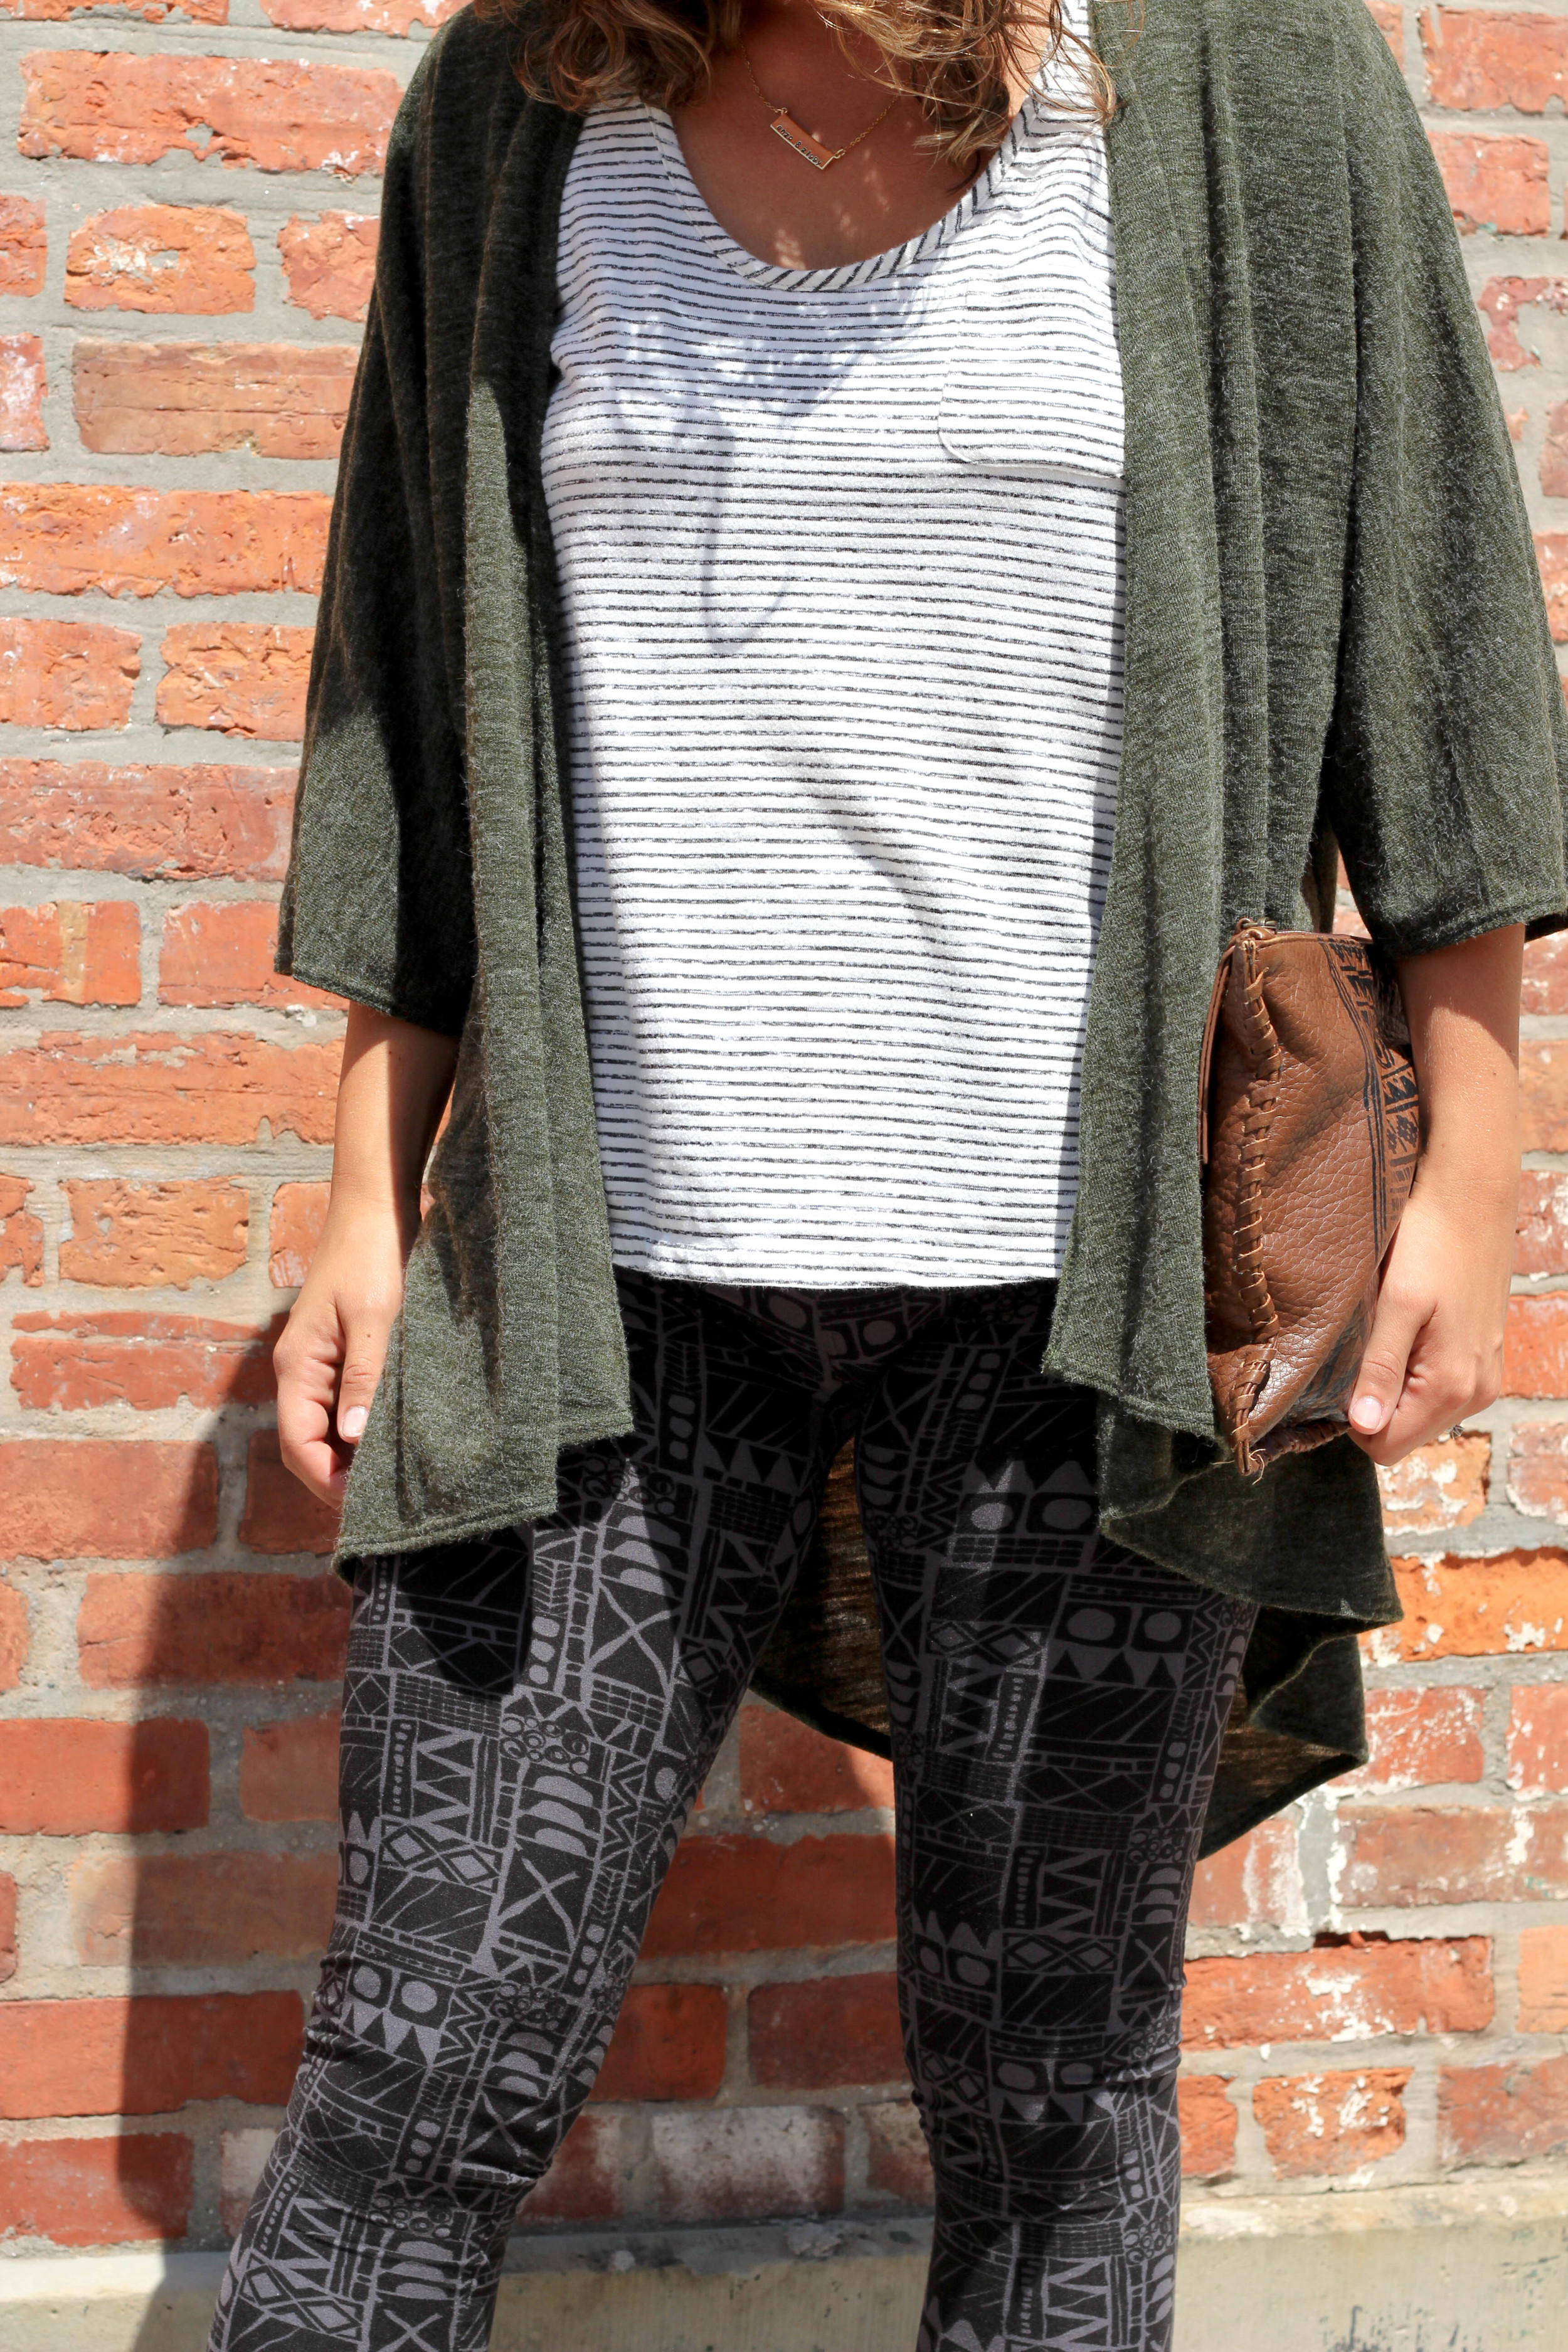 pattern leggings with stripe top outfit, the easiest way to mix prints, how to style printed leggings, printed leggings for women, comfort fashion, bohemian, patterned pants, army green, mix and match prints, how to wear stripes,